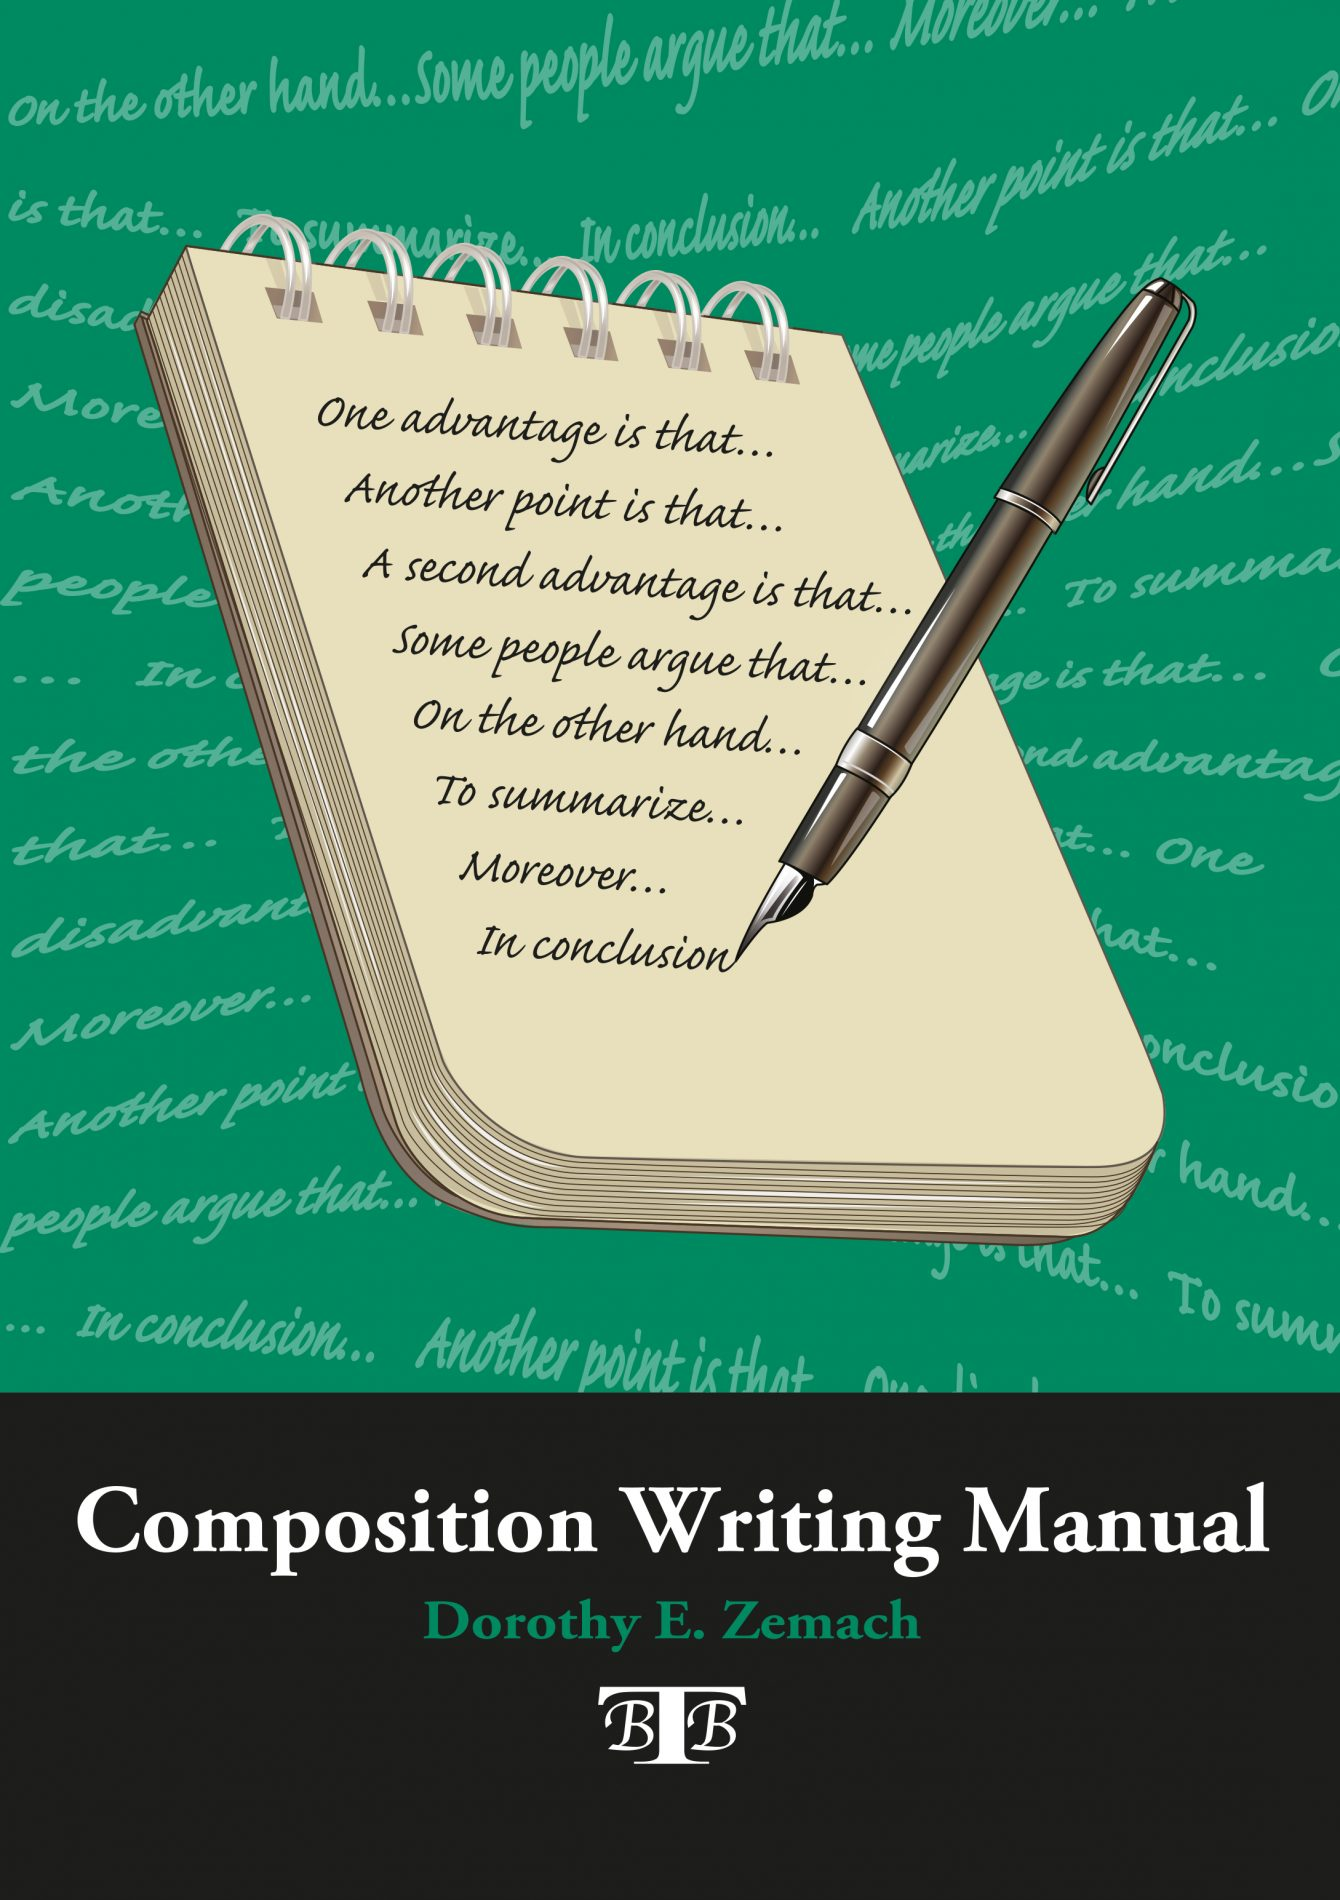 composition writing manual btb press